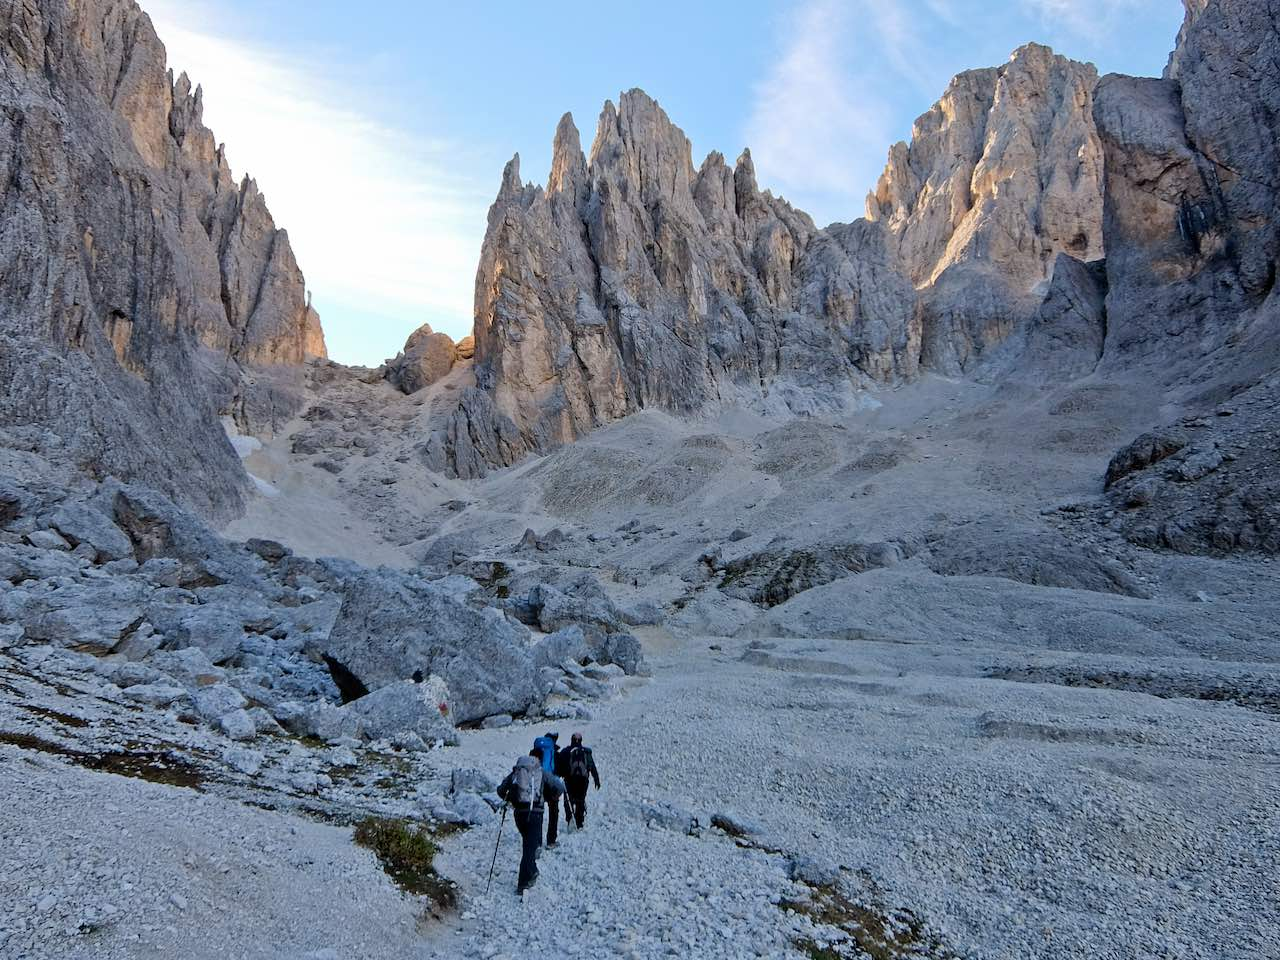 Crown of Gardena - Descending from Rifugio Toni Demetz